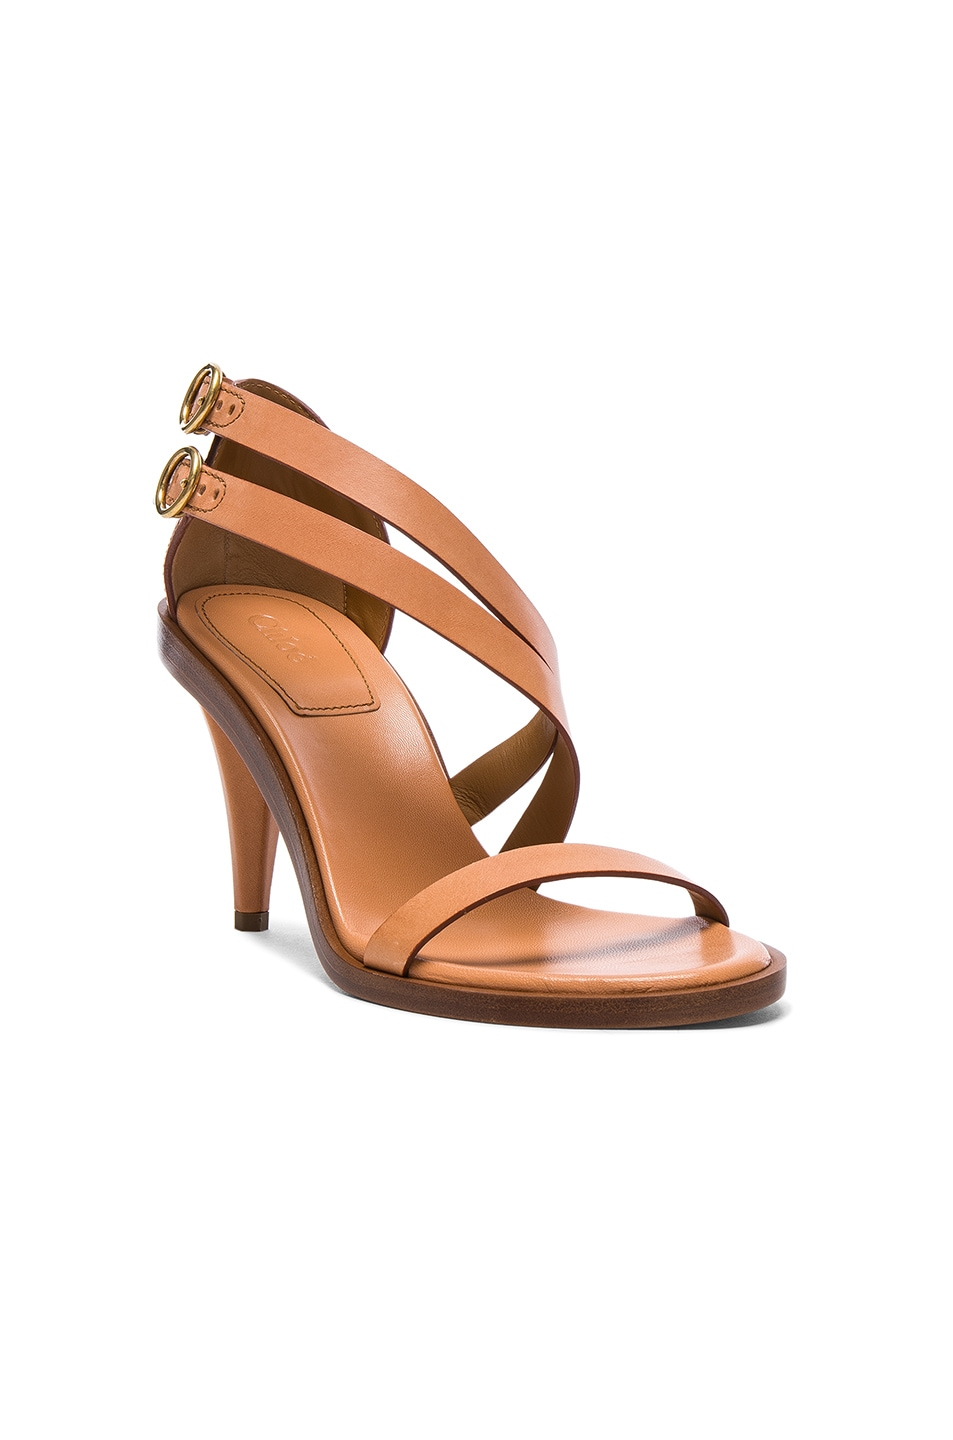 d7bfd7a1982bd Image 2 of Chloe Leather Niko Sandals in Misty Beige